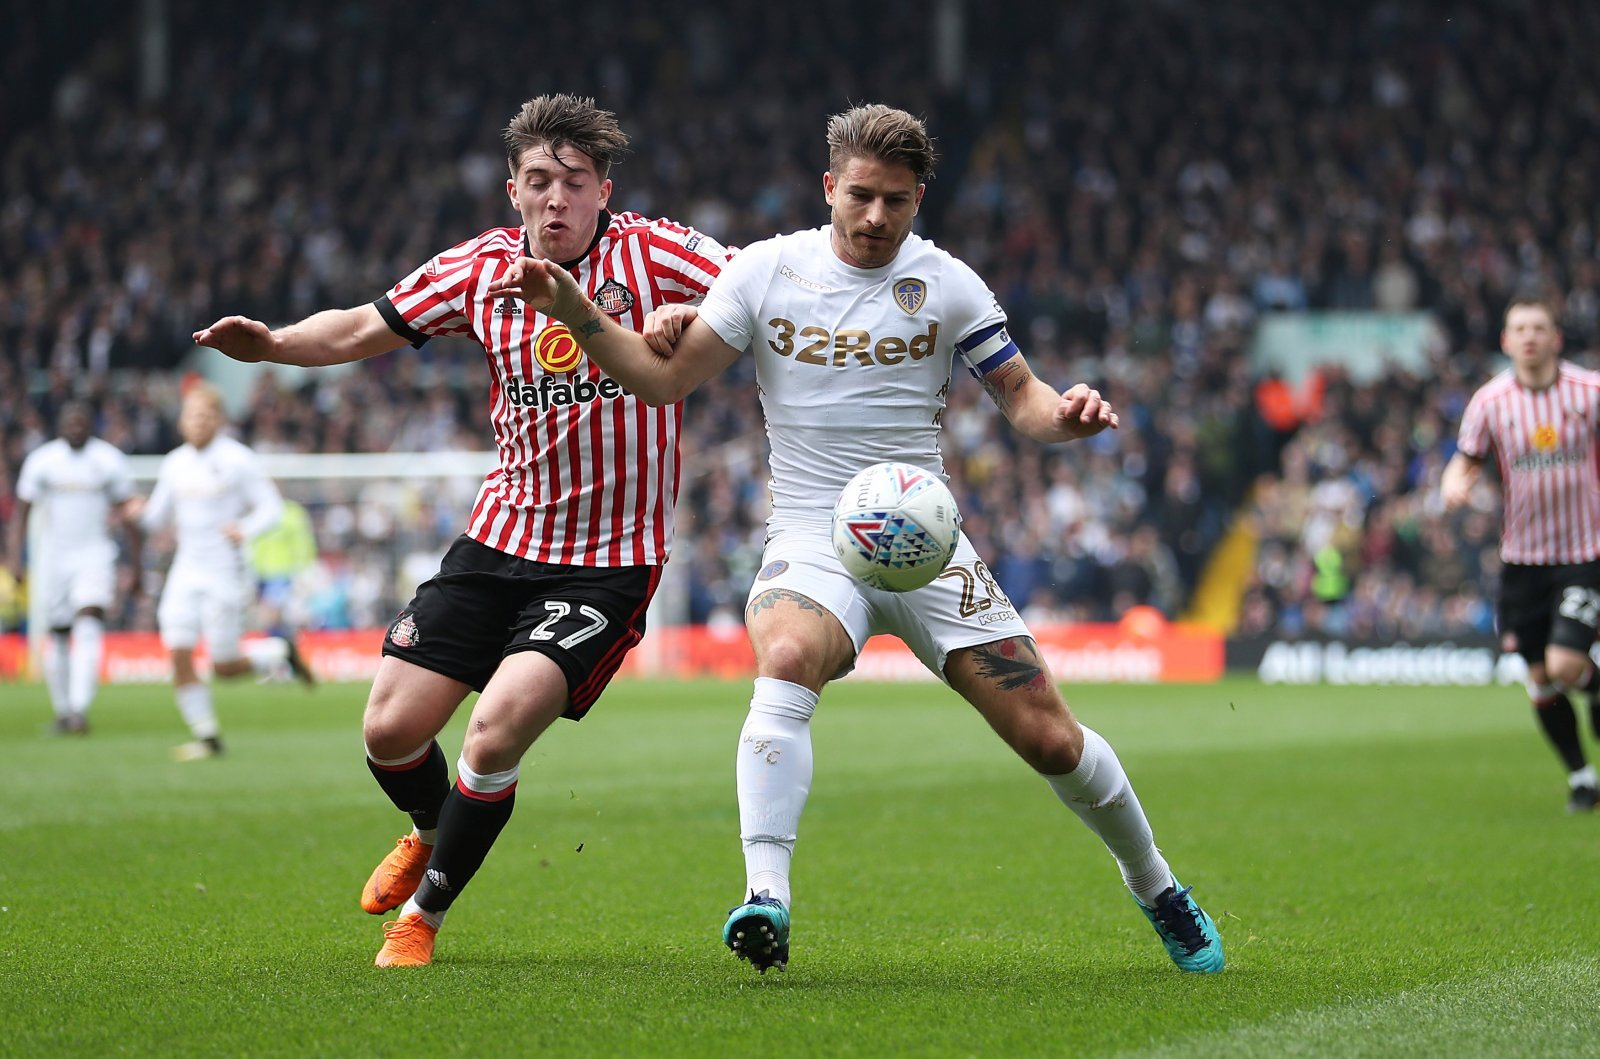 Leeds fans take to Twitter to berate Berardi after Derby dismissal